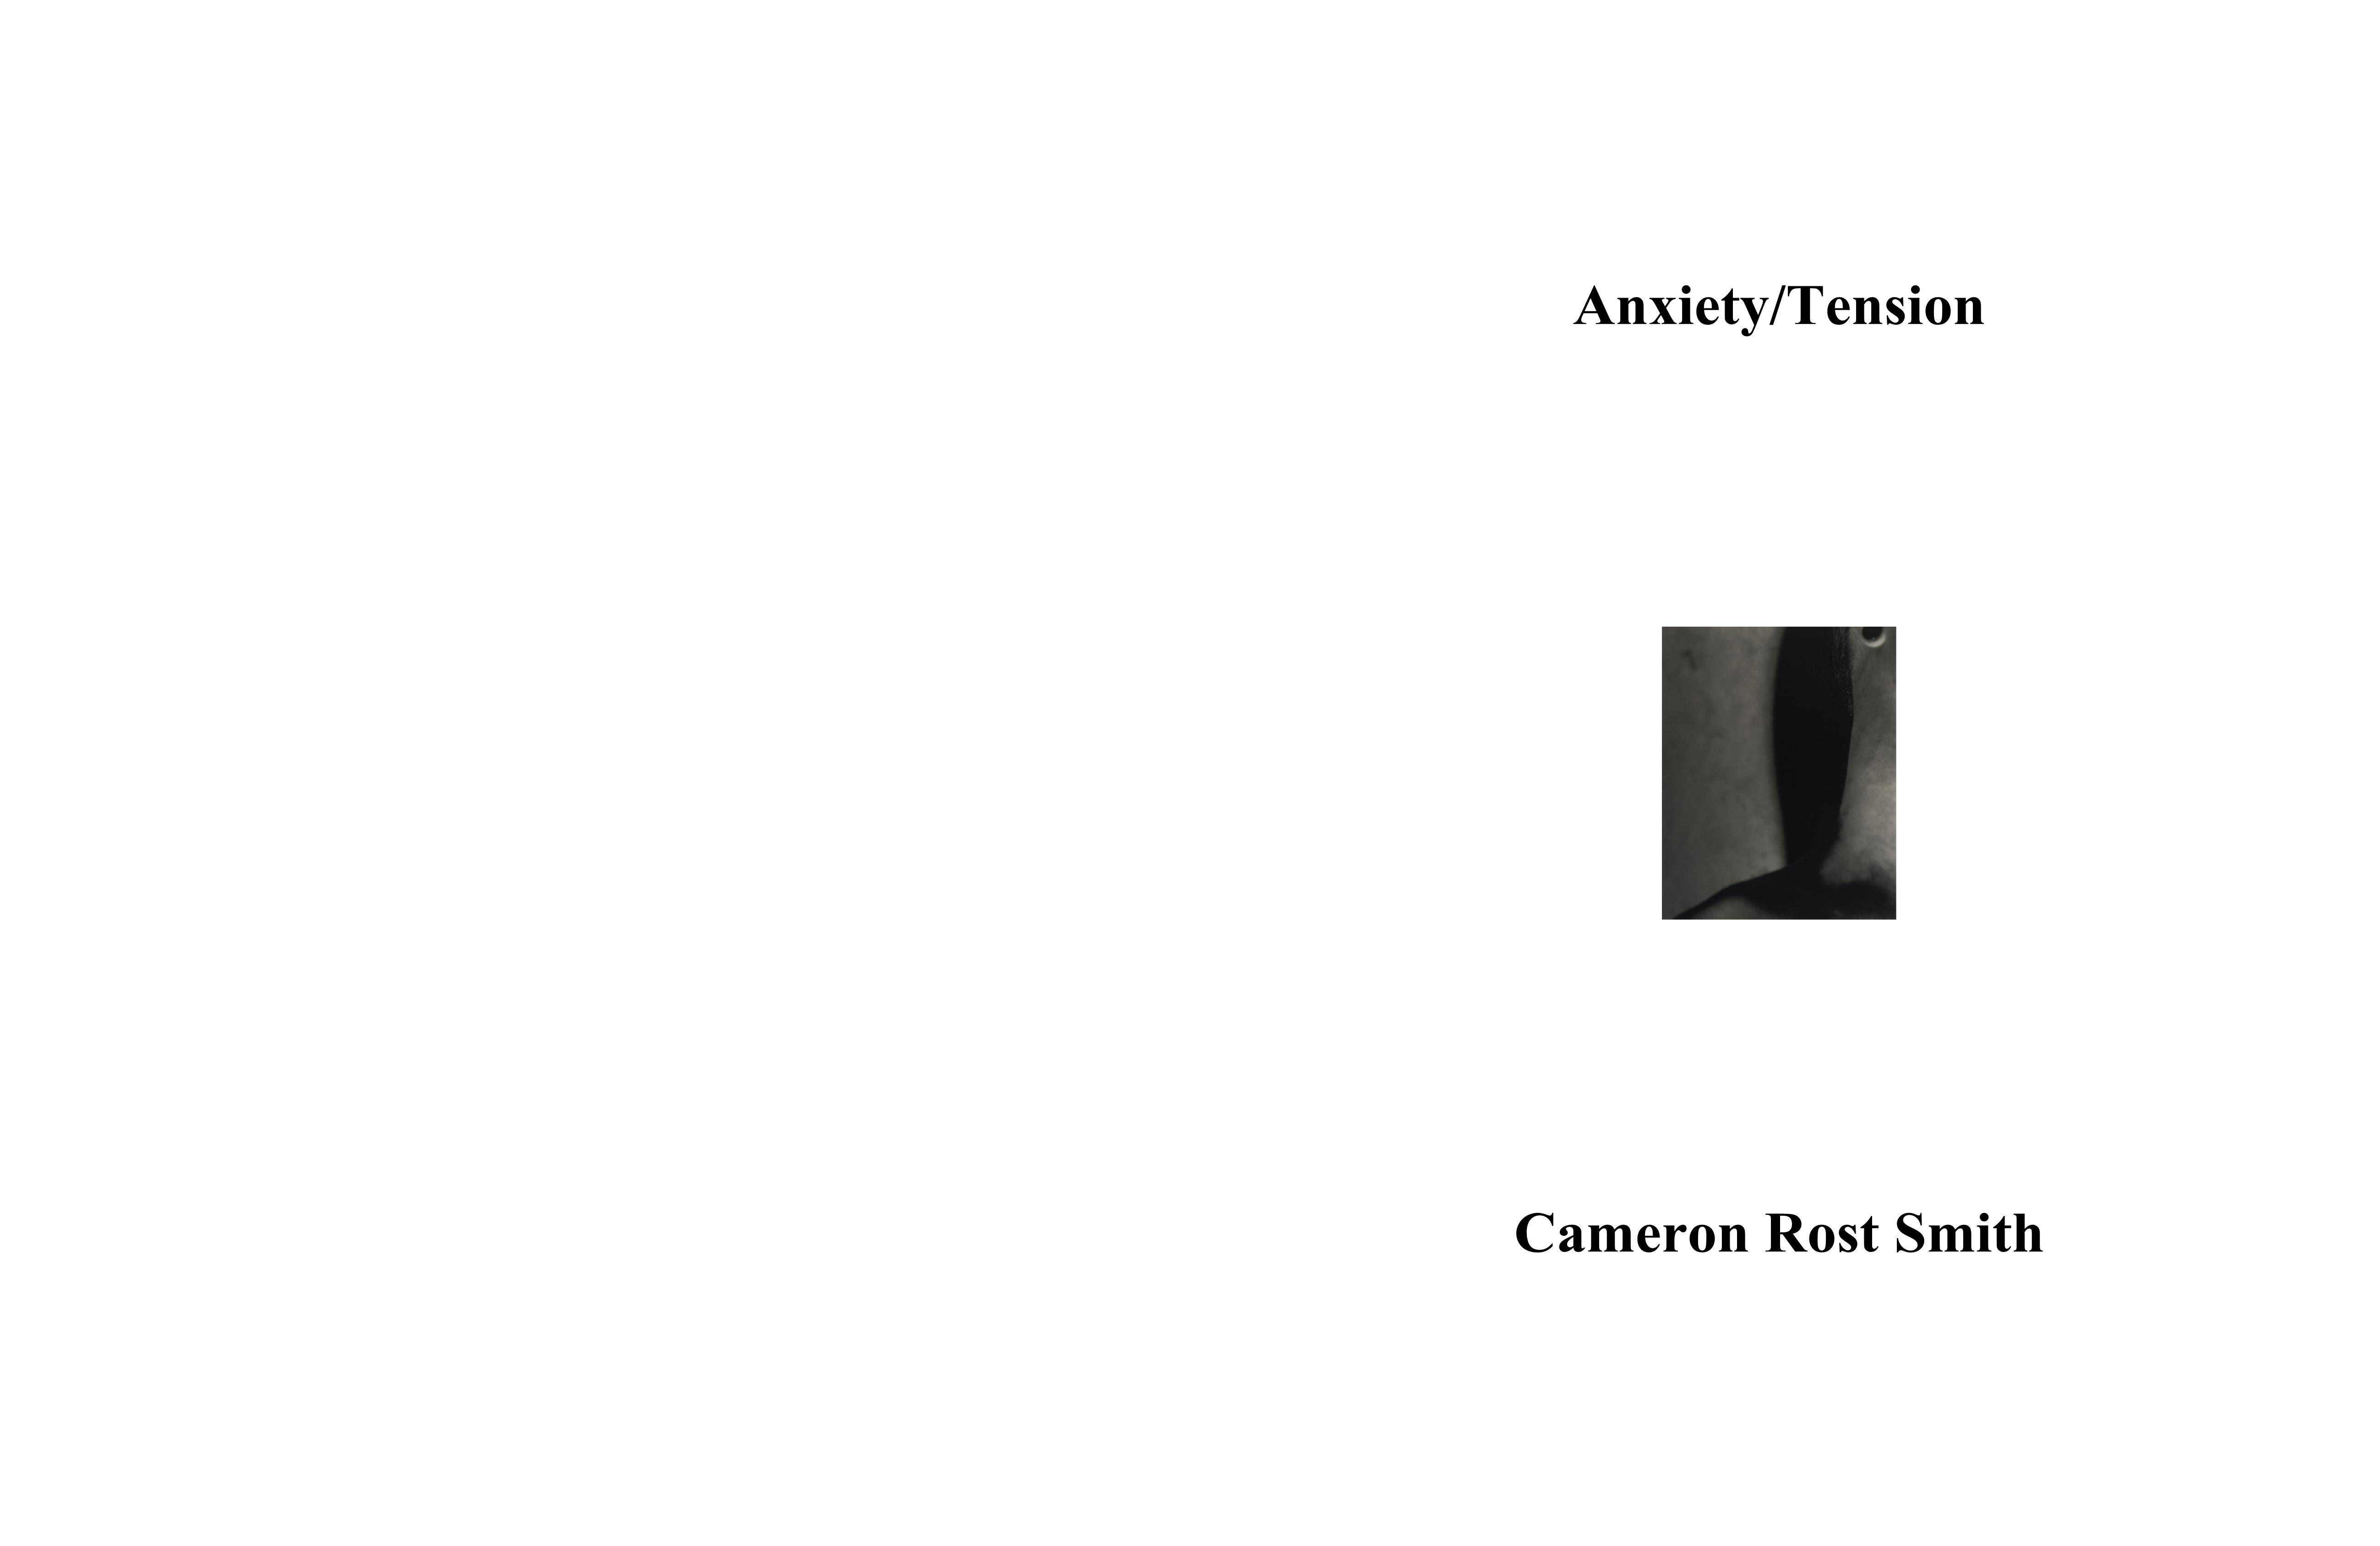 Anxiety/Tension cover image